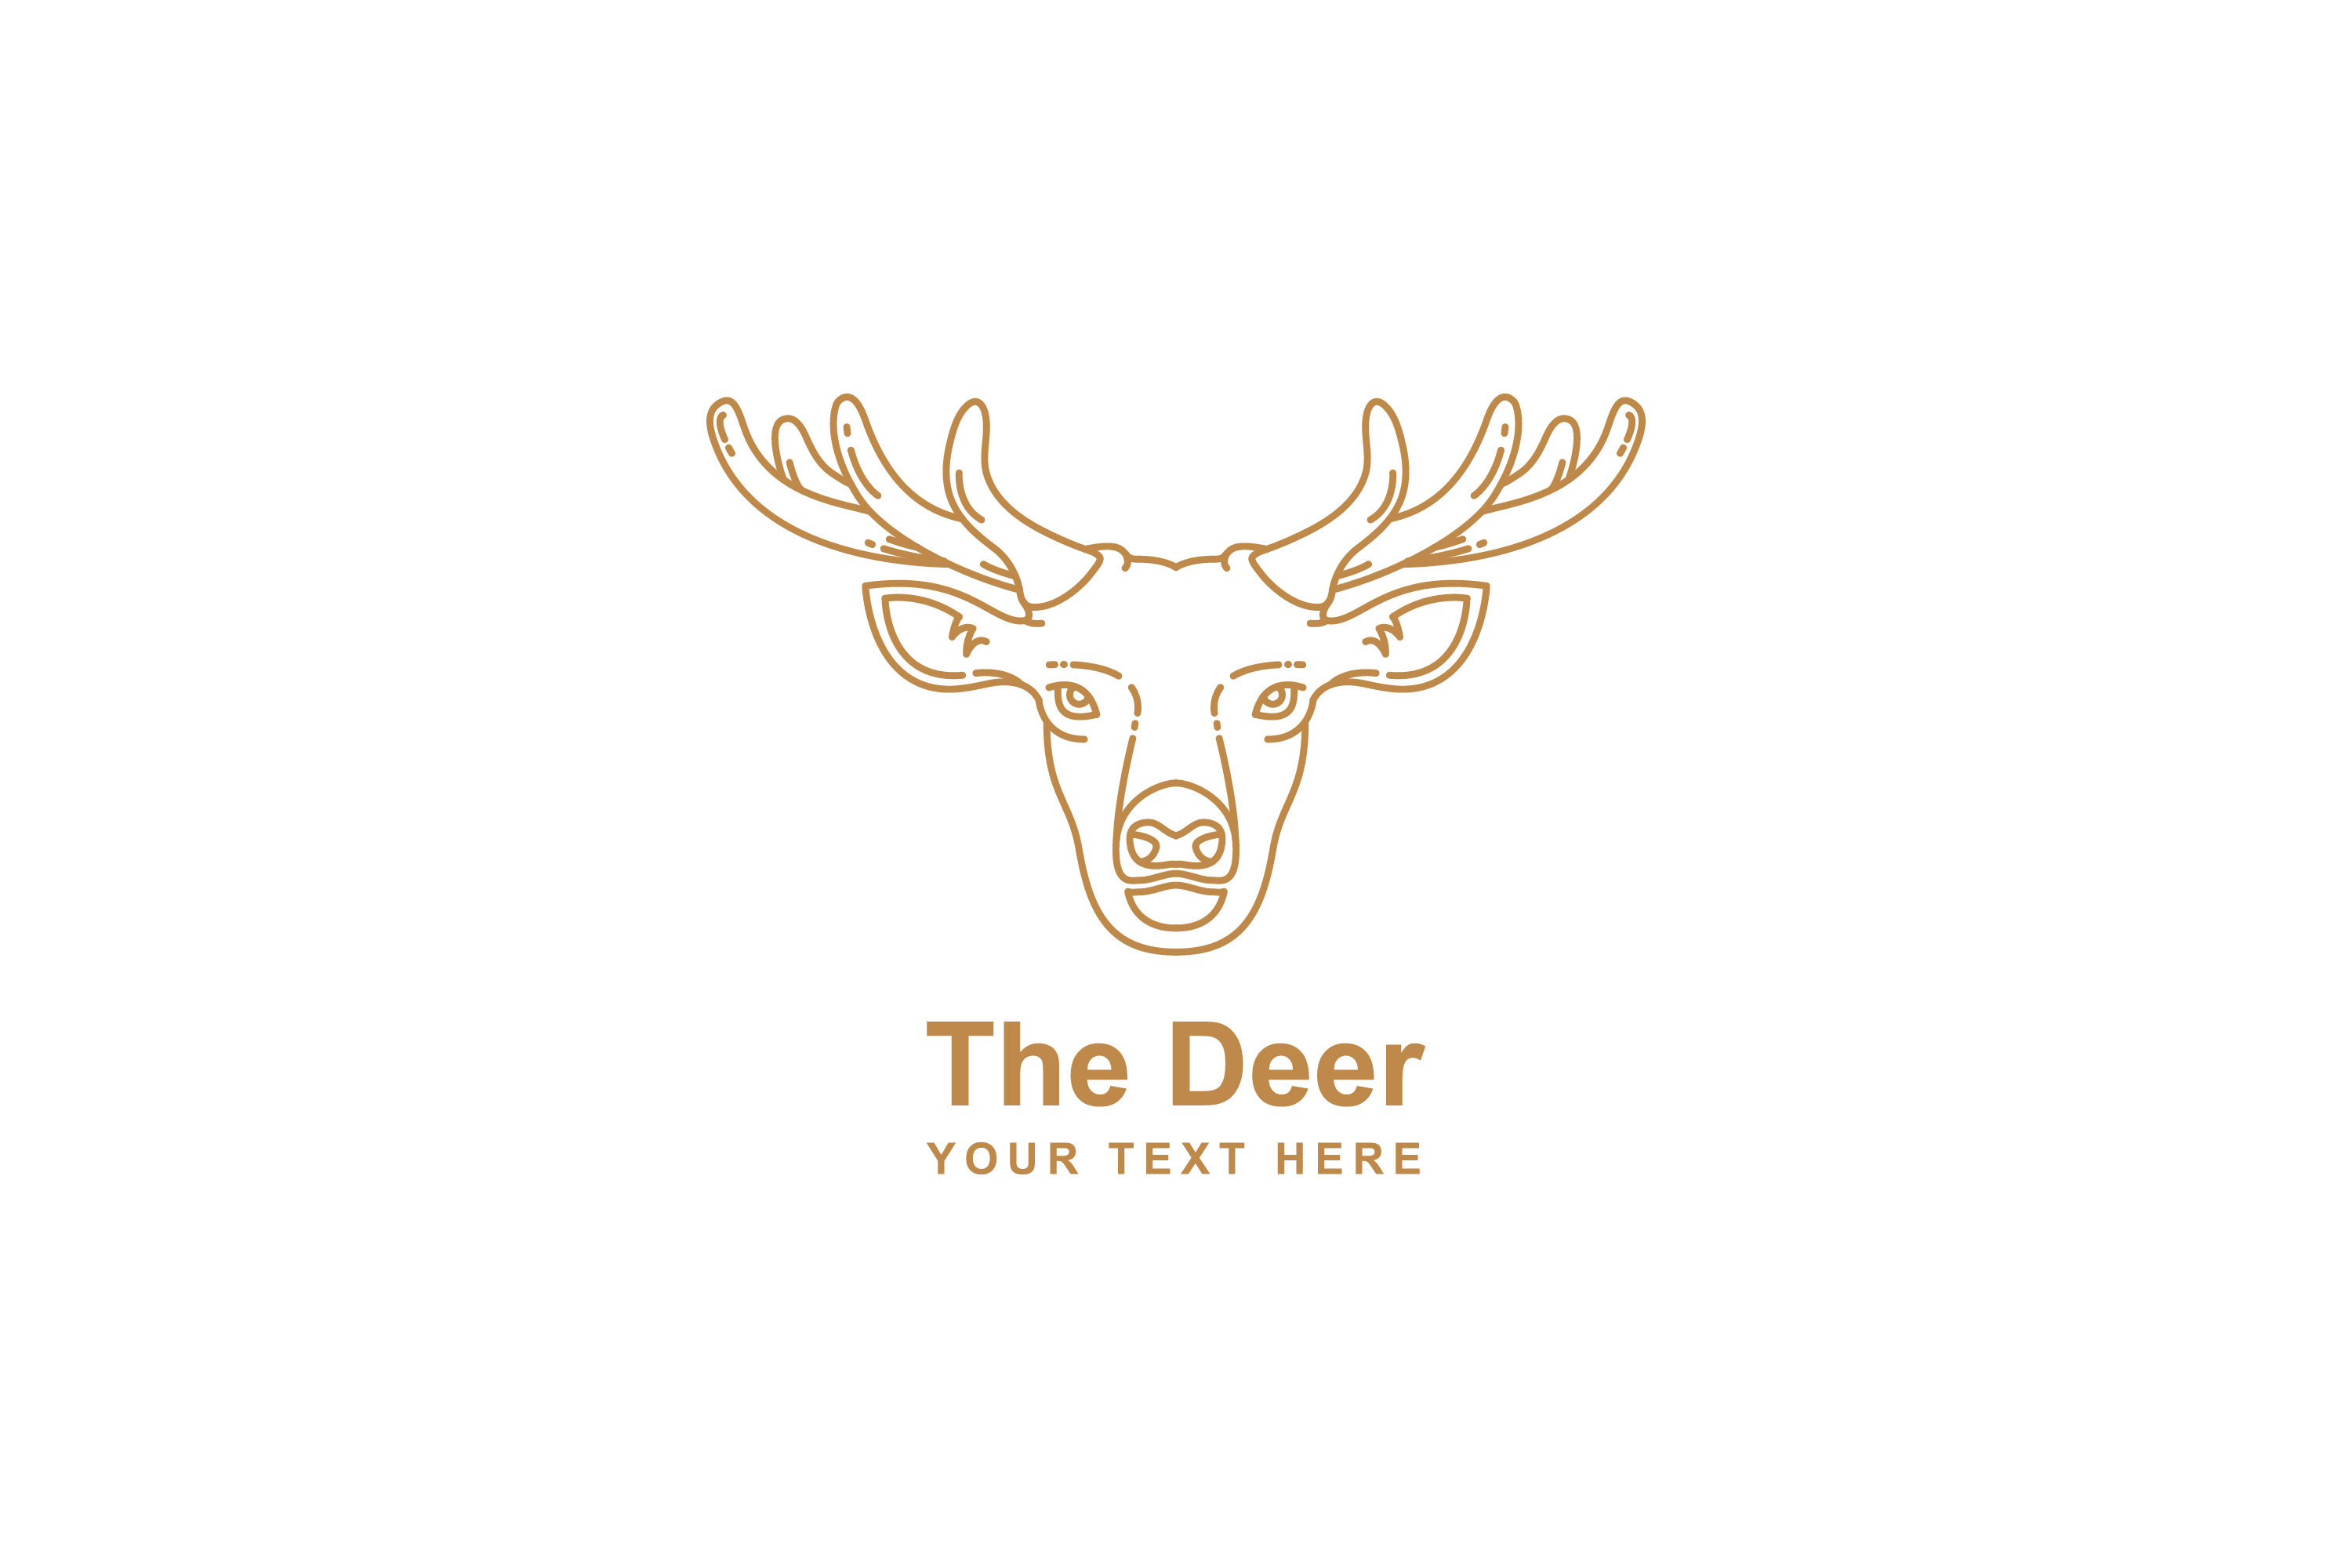 Download Free Deer Mono Line Design Graphic By Sabavector Creative Fabrica for Cricut Explore, Silhouette and other cutting machines.